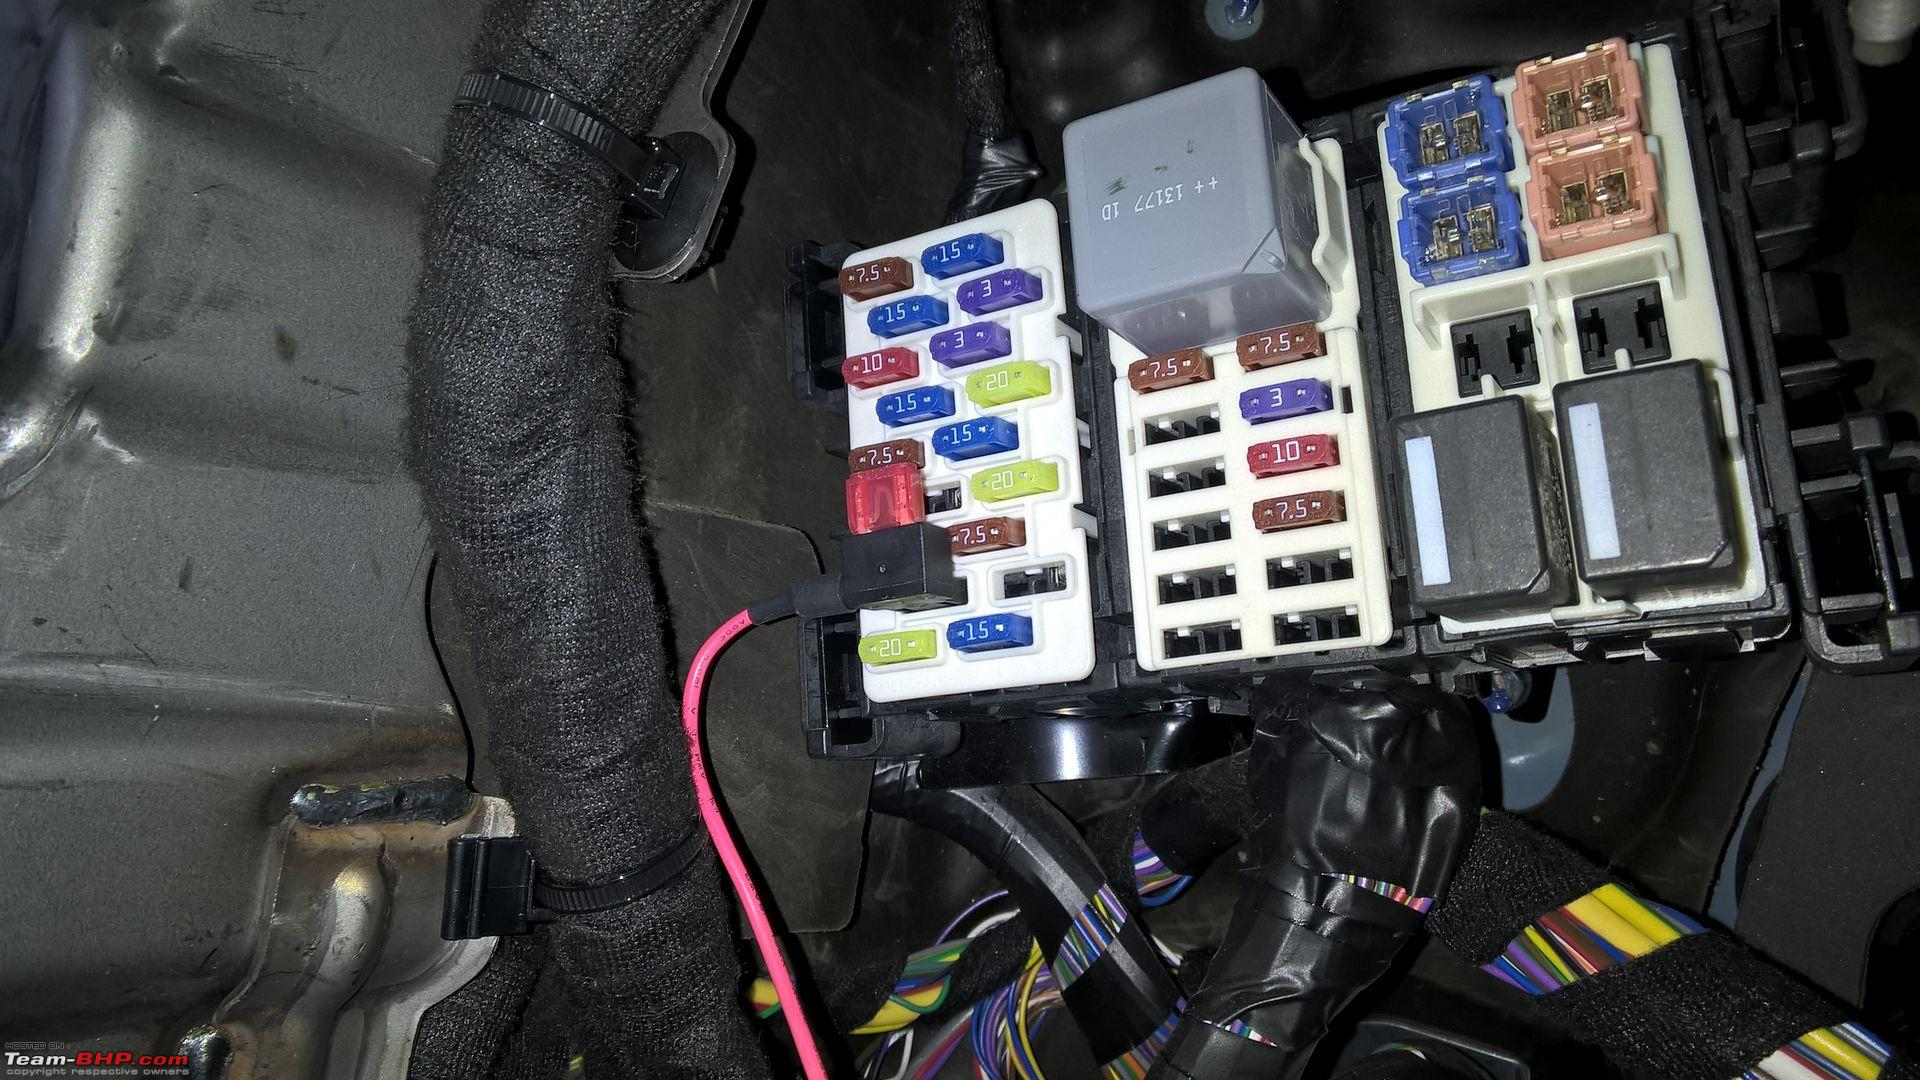 1405246d1439985339 diy hardwiring your dashcam fuse tap fitted www team bhp com forum attachments diy do yourself connect wire to fuse box at readyjetset.co